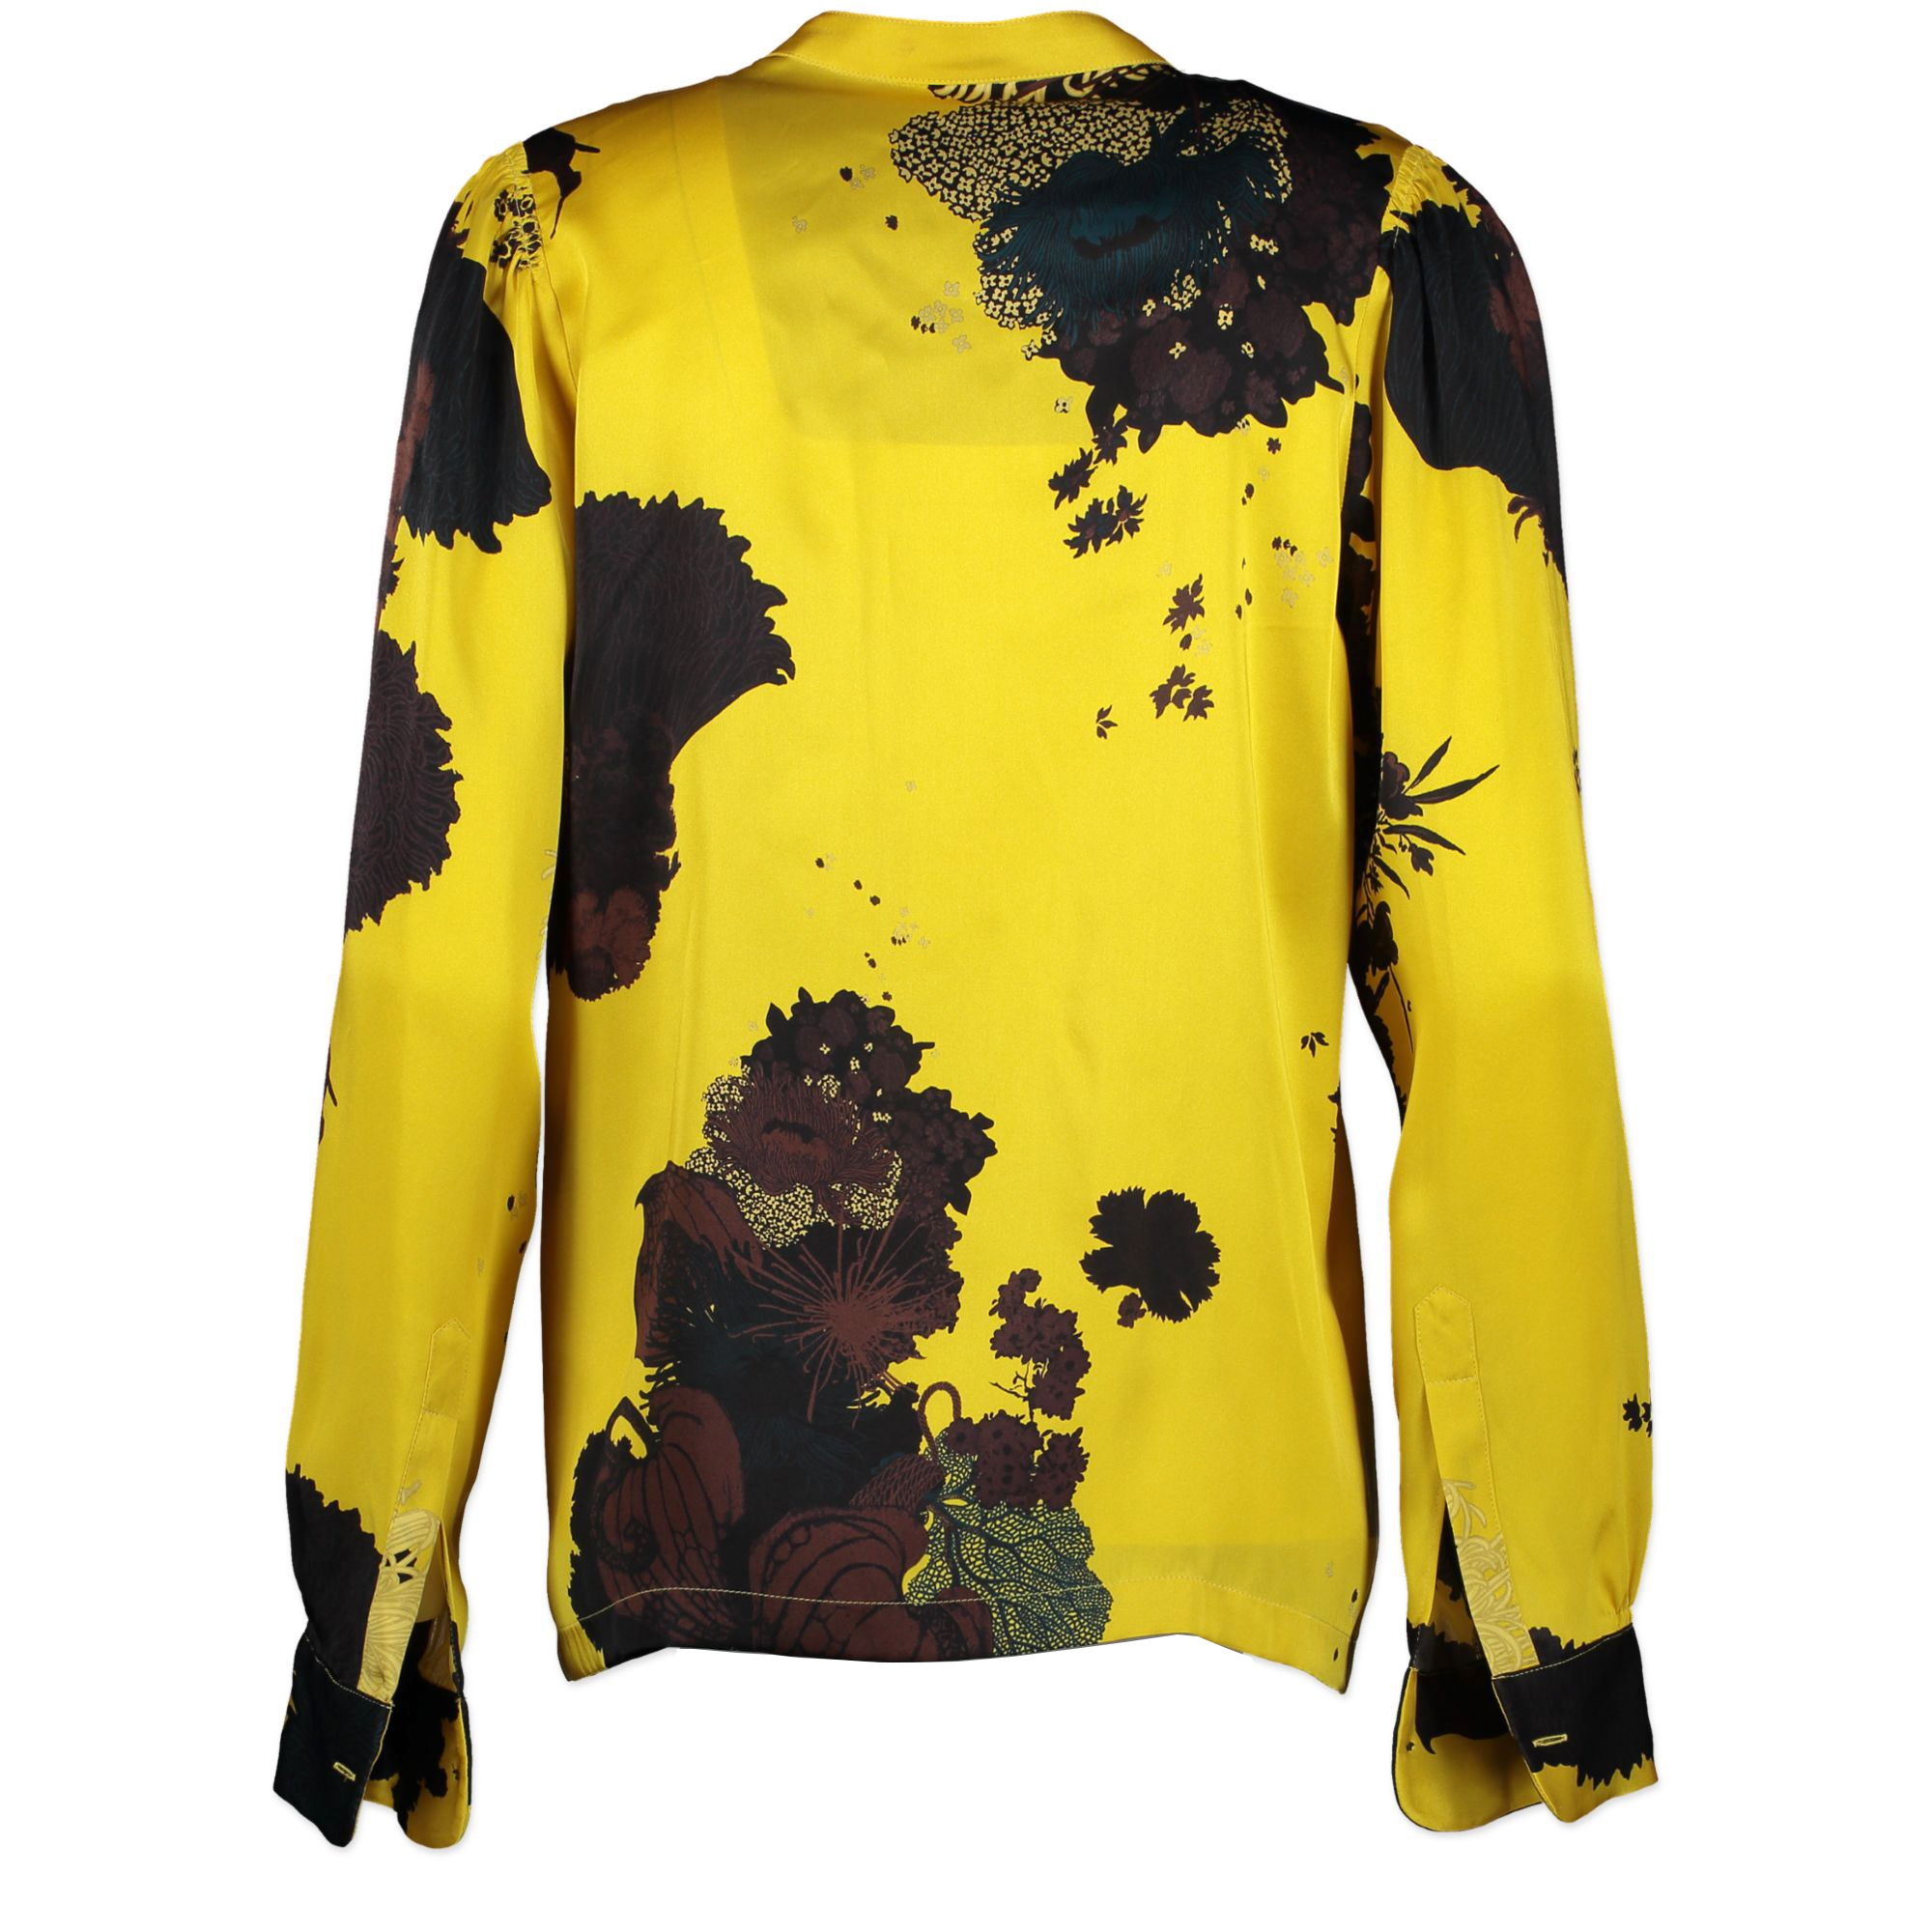 Dries Van Noten Yellow Silk Blouse - Size 36